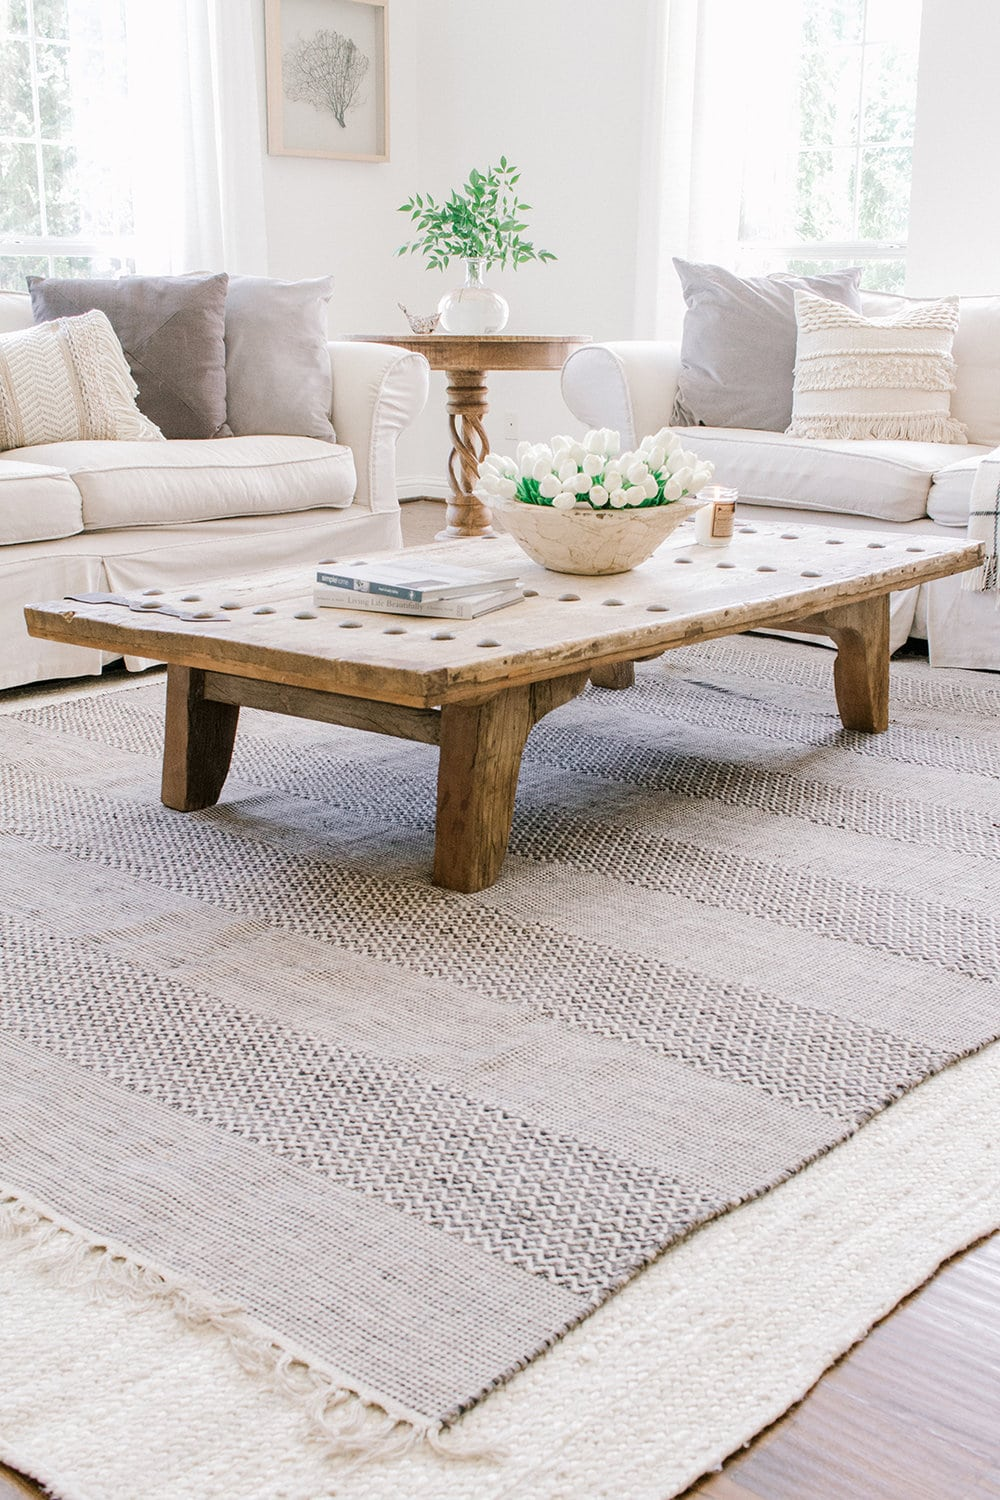 Decorating your living room properly will. Home Decorating Trends 2021 24 Popular Interior Decor Ideas